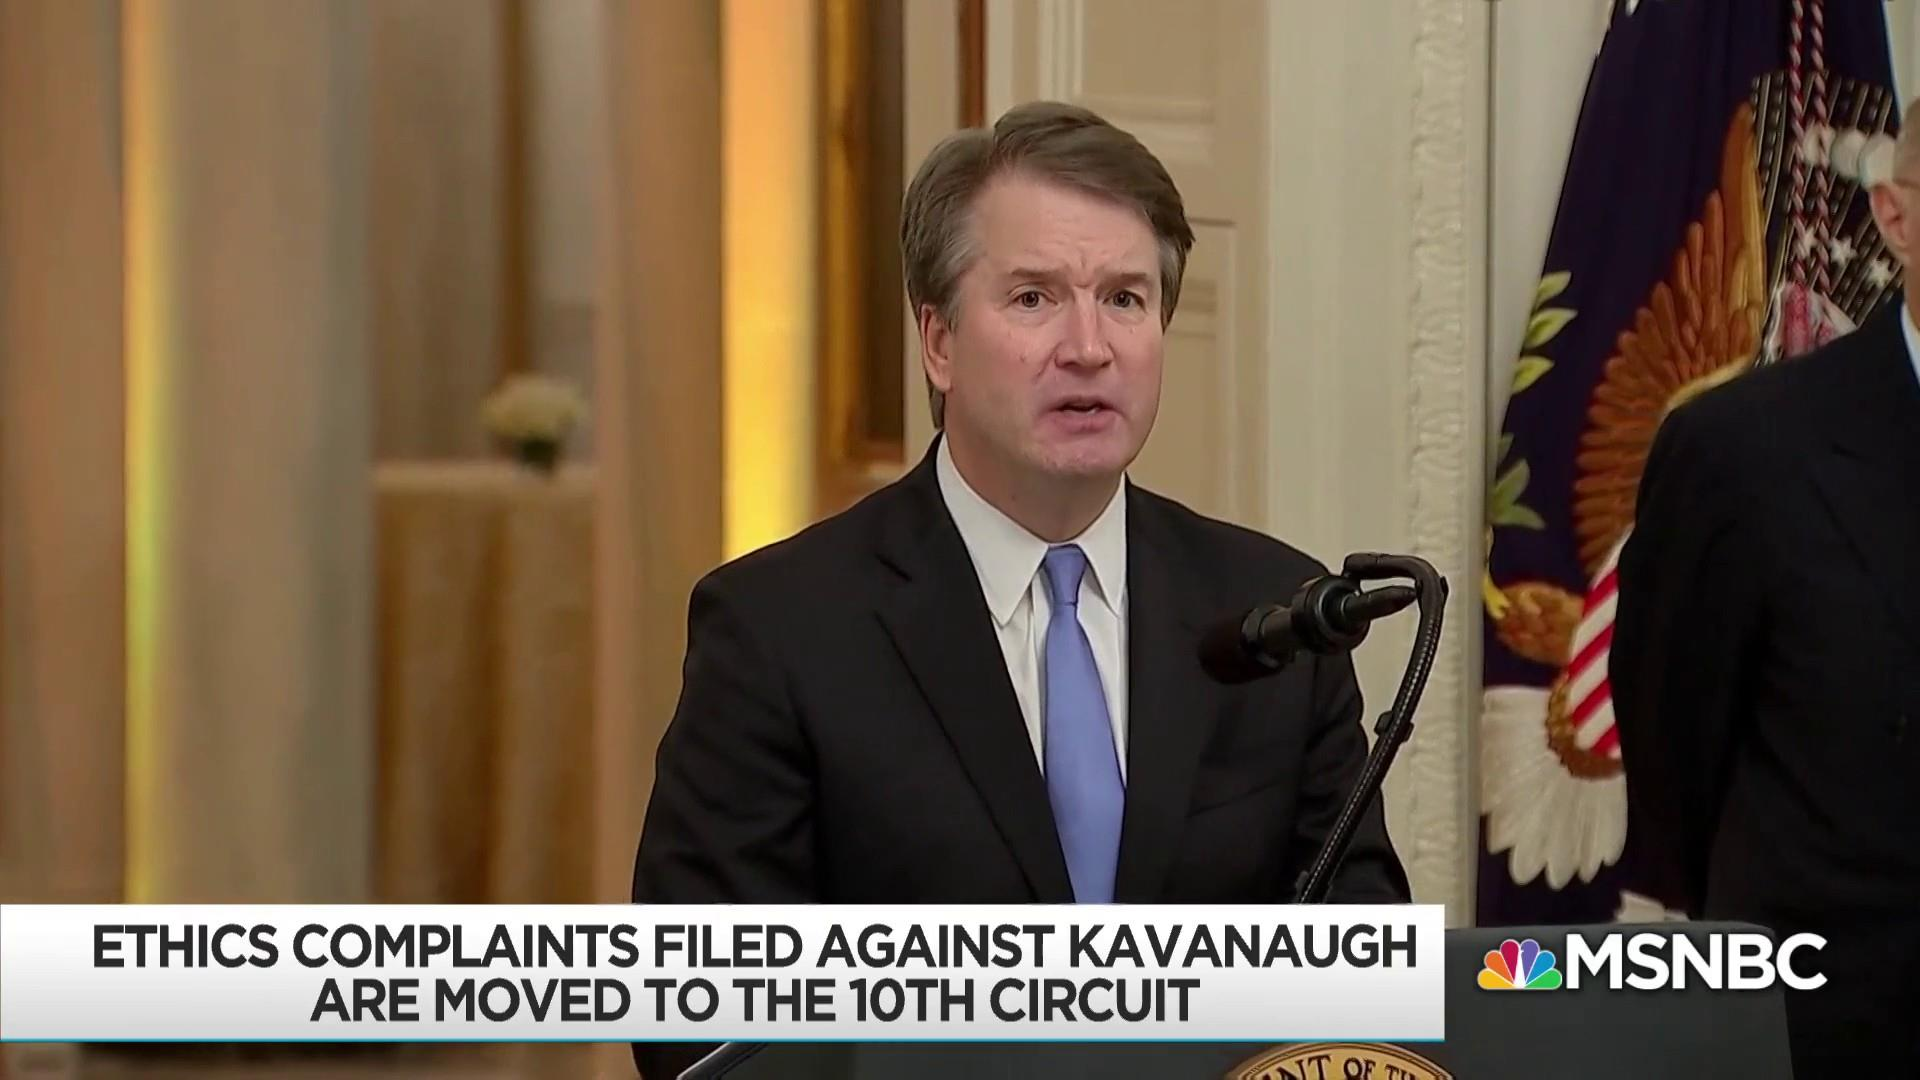 Kavanaugh ethics complaints referred to 10th Circuit court